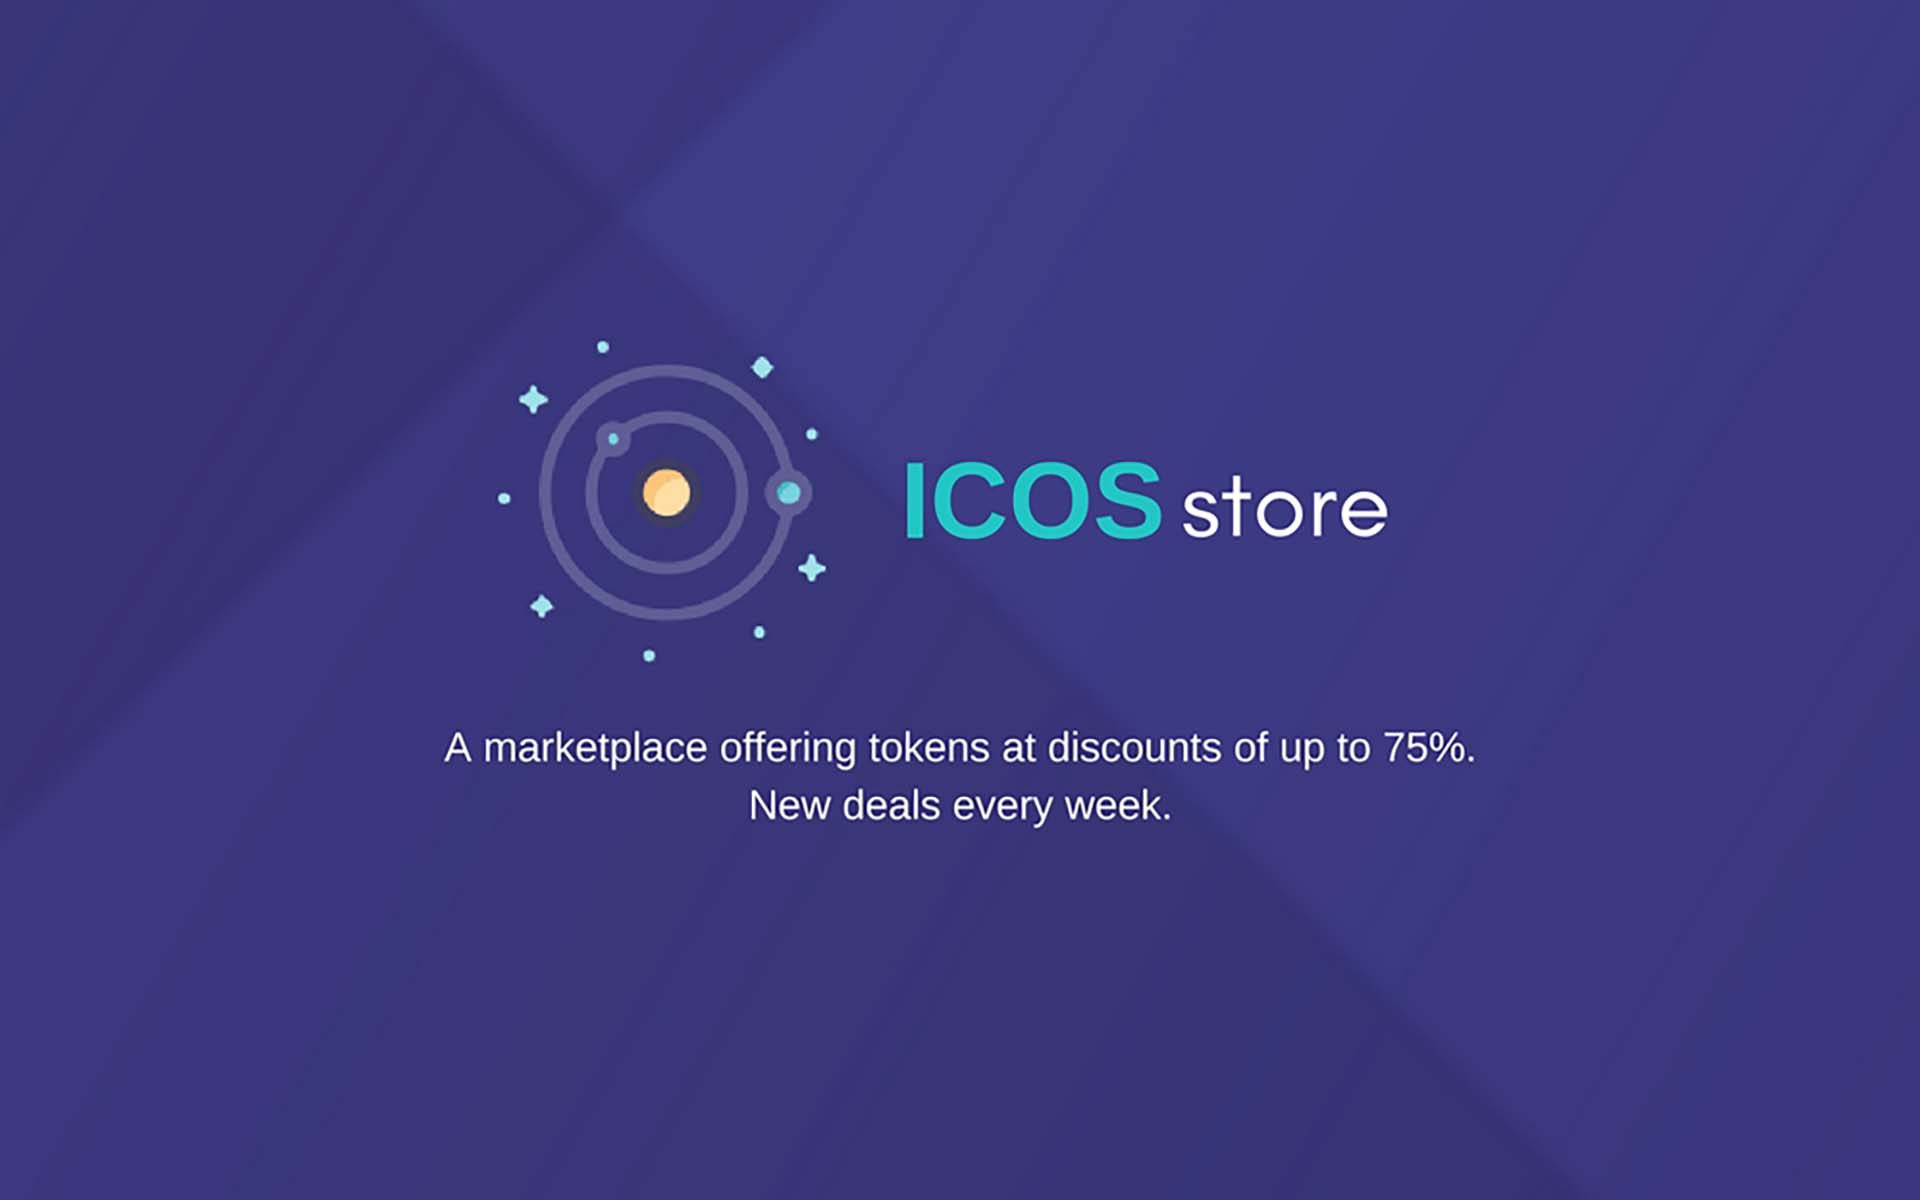 ICOBox Token Store Launches with Two Exclusive ICO Discounts